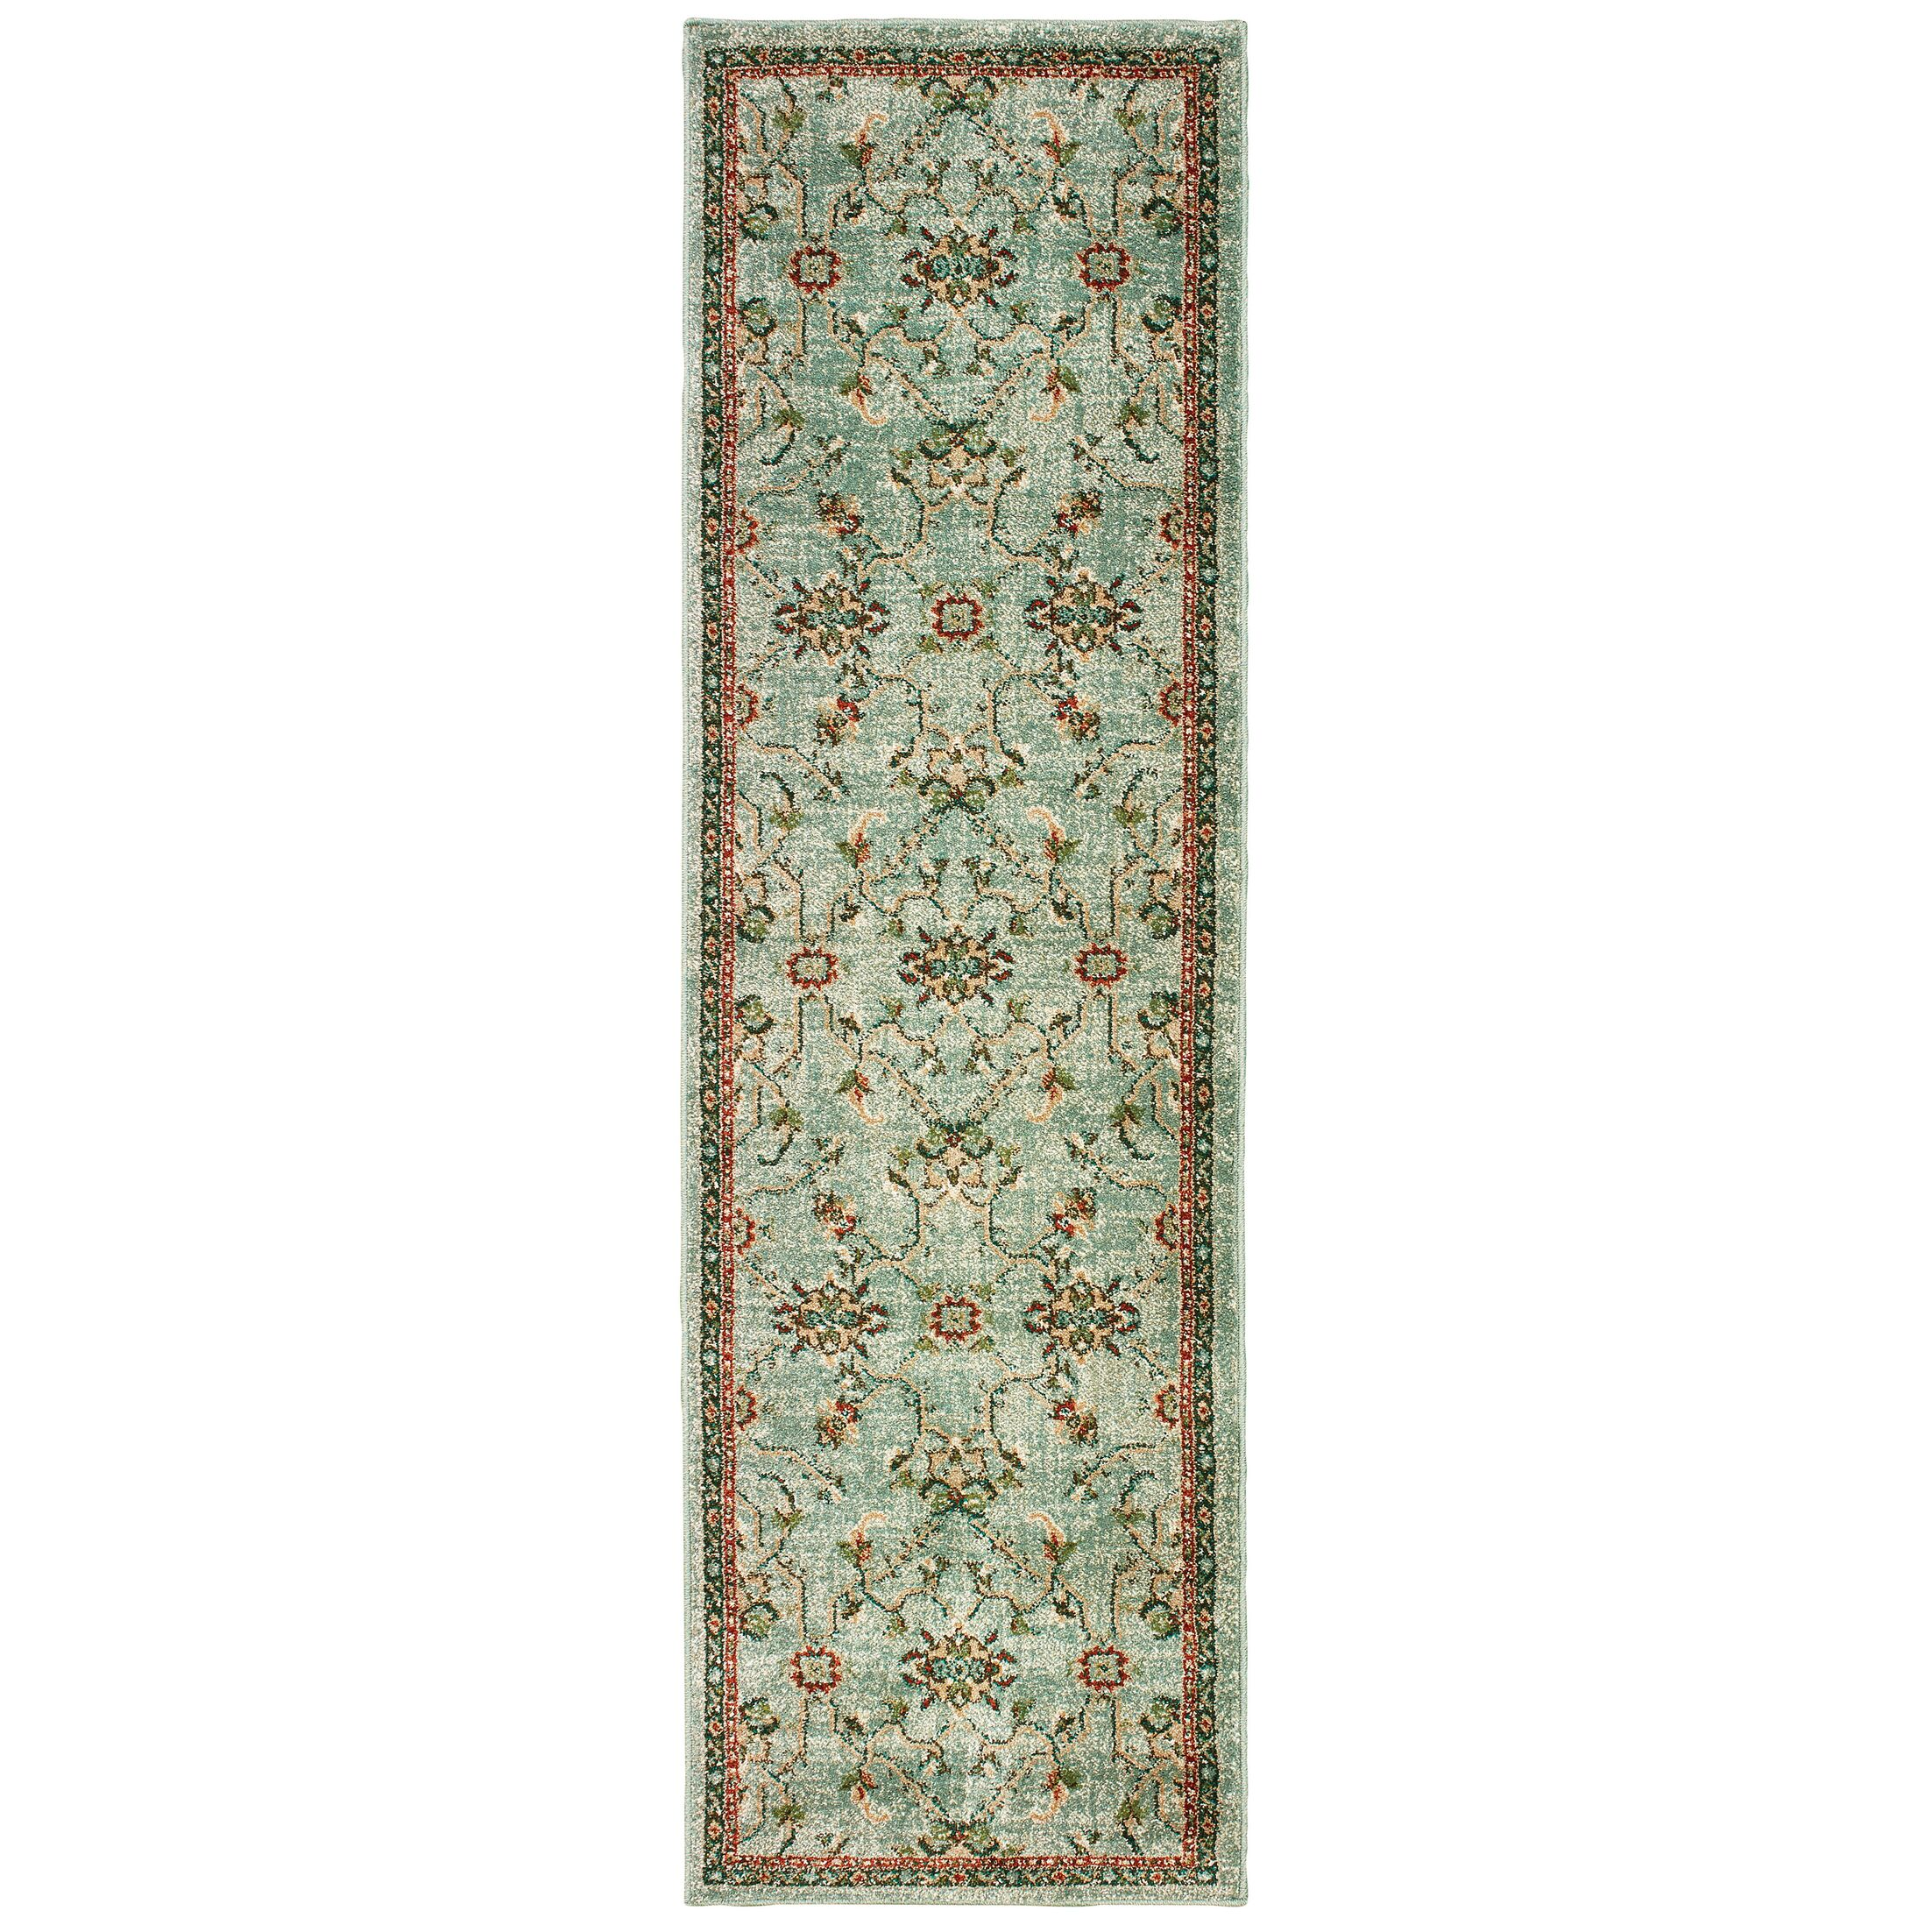 Hedberg Traditional Floral Mint Green/Beige Area Rug Rug Size: Rectangle 6'7